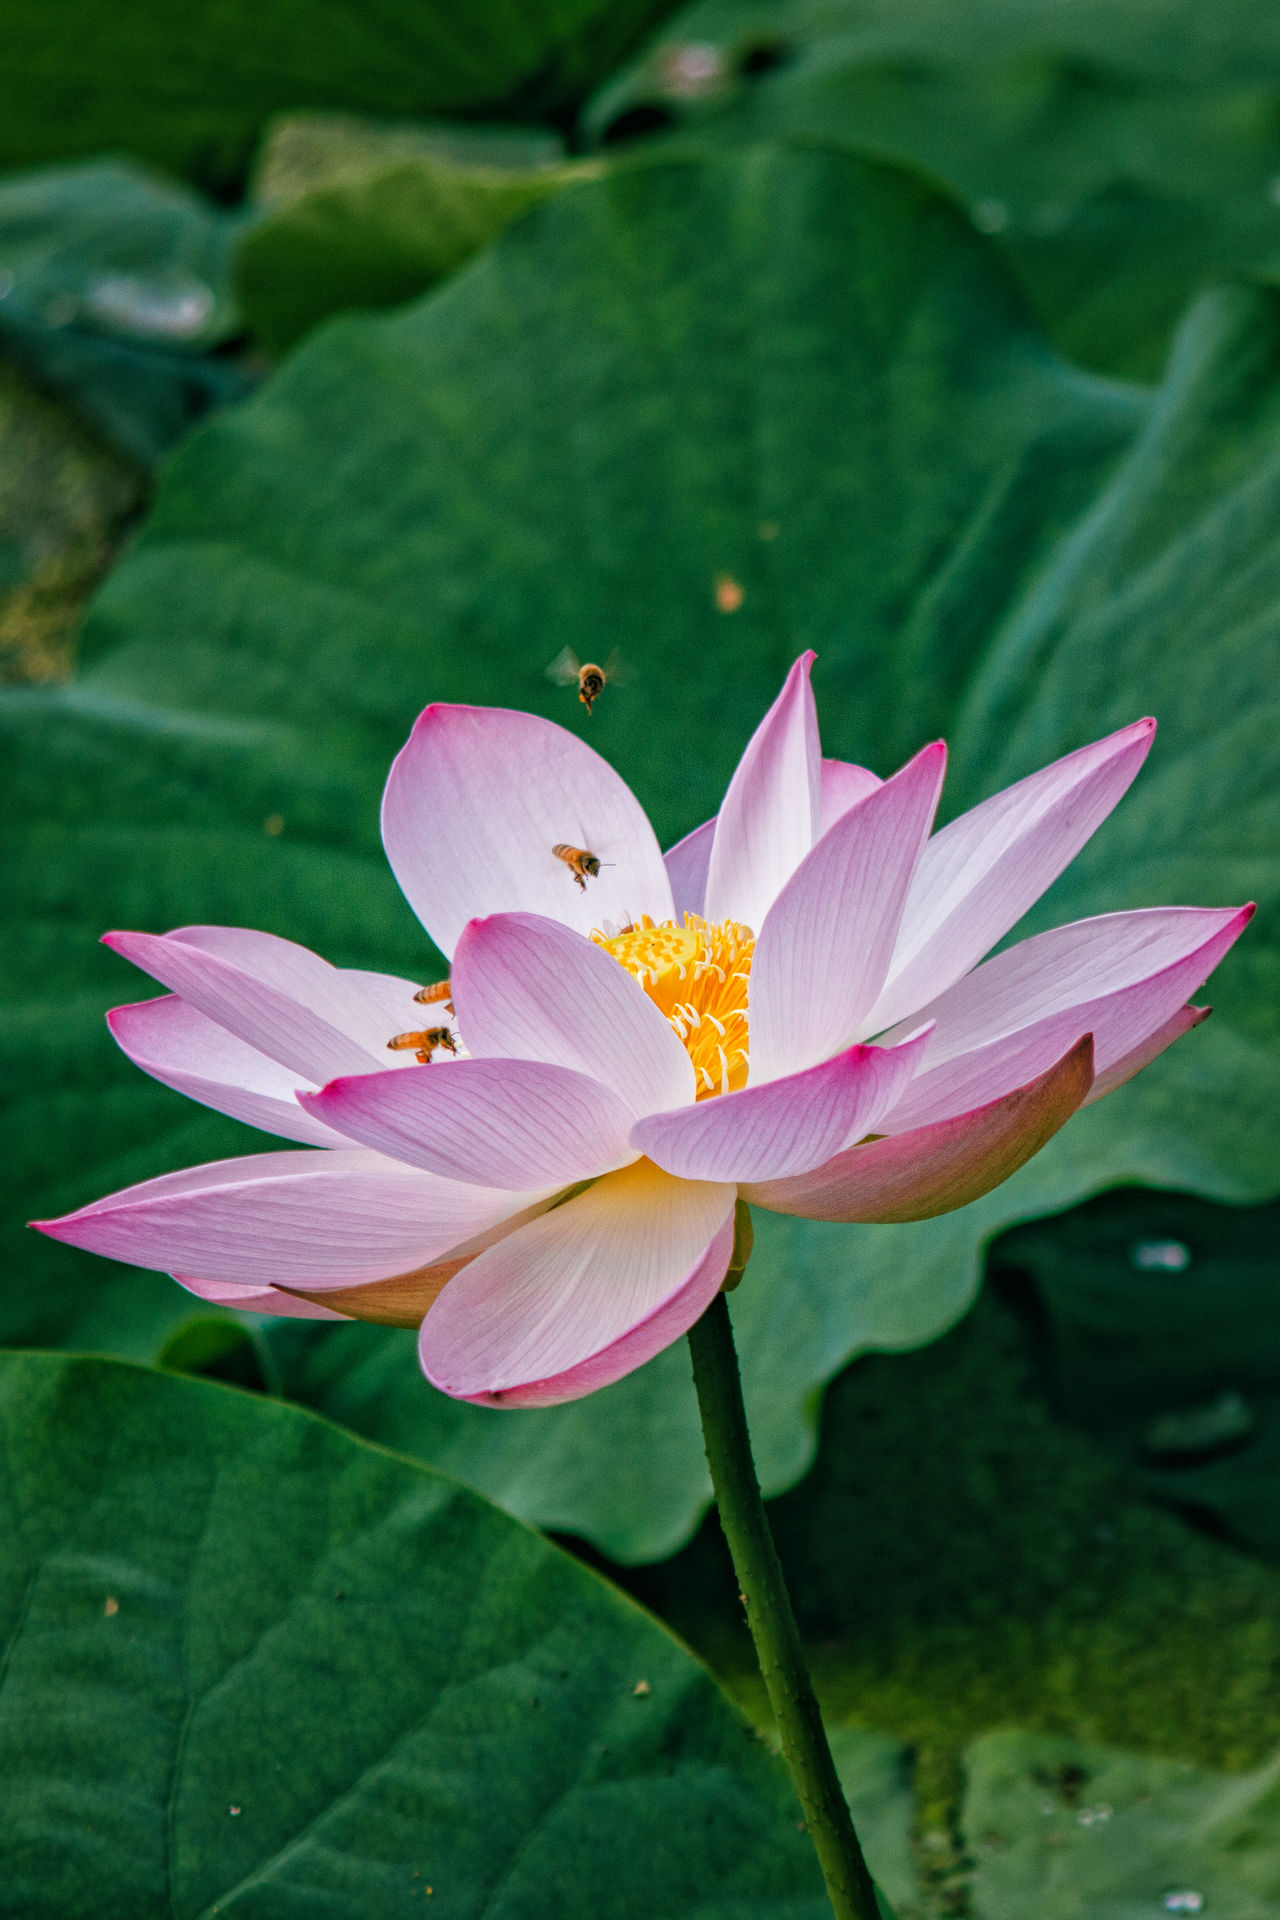 Bees and lotus Bee Day Flower Flower Head Green Color Growth Leaf Lotus Nature No People Outdoors Petal Pink Color Plant